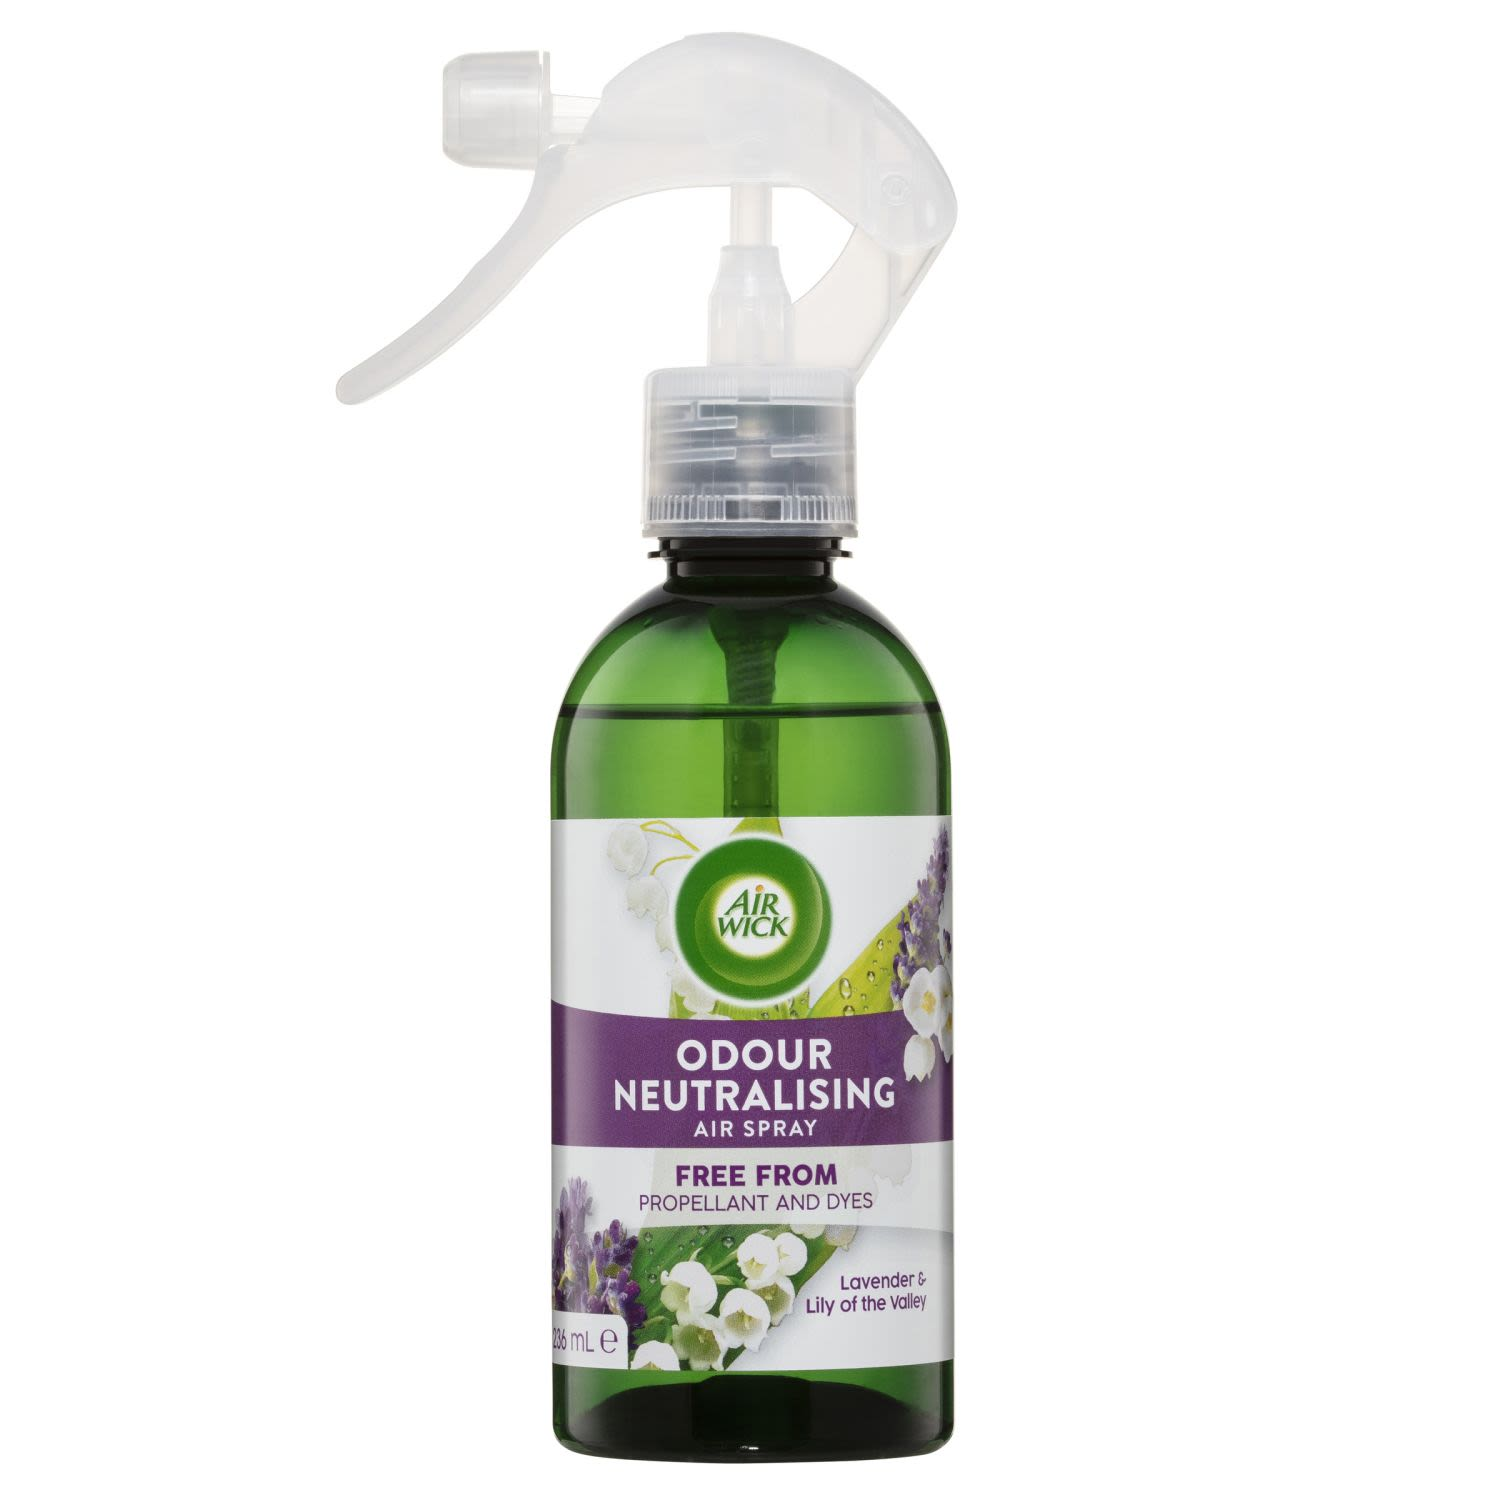 Air Wick Odour Neutralising Air Spray Lavender & Lily Of The Valley, 236 Millilitre